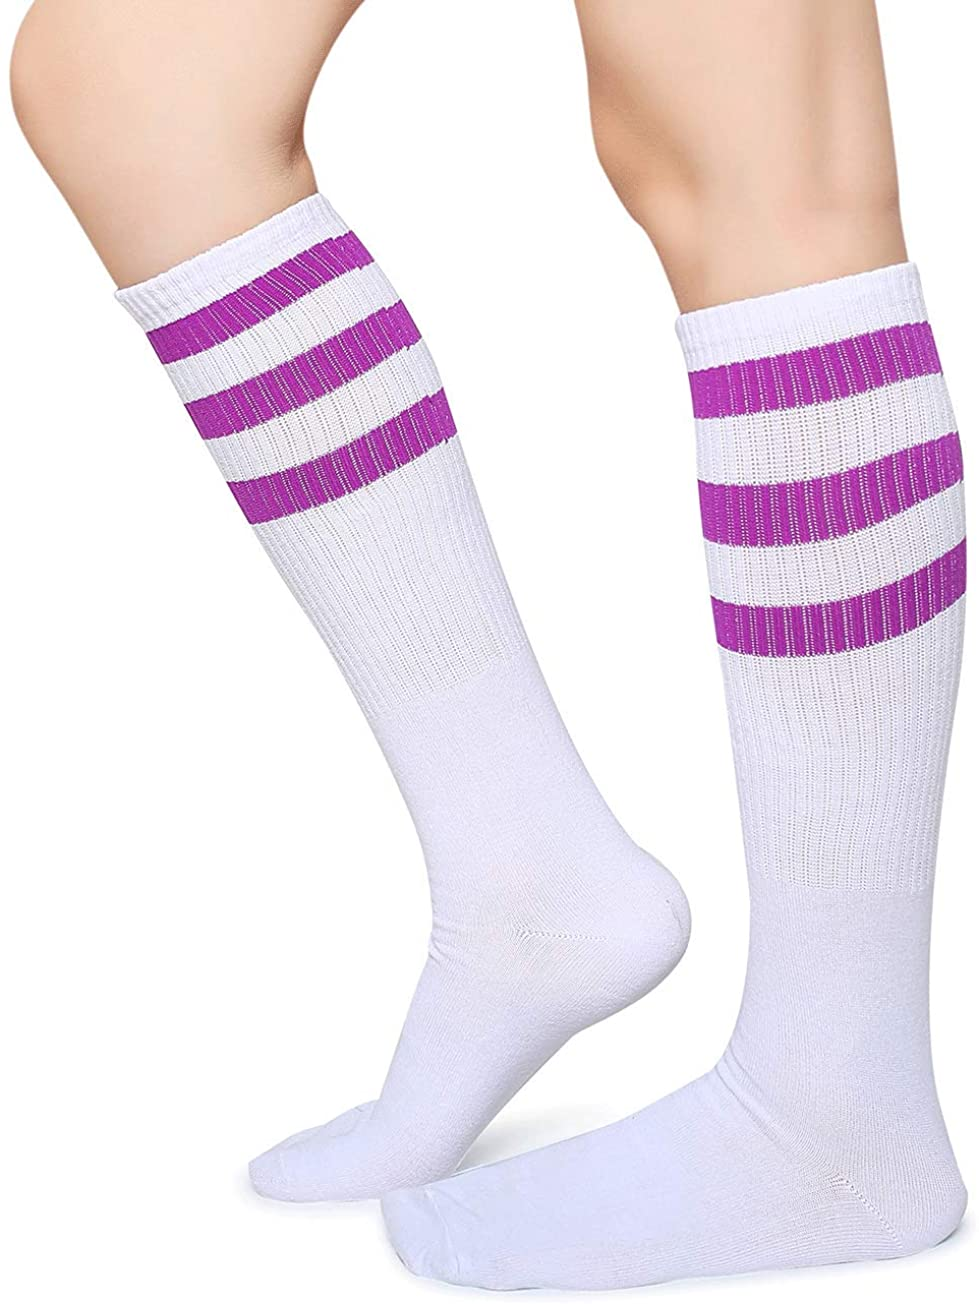 Pareberry Classical Triple Stripes Soft Cotton Over-the-Calf Retro Tube Socks